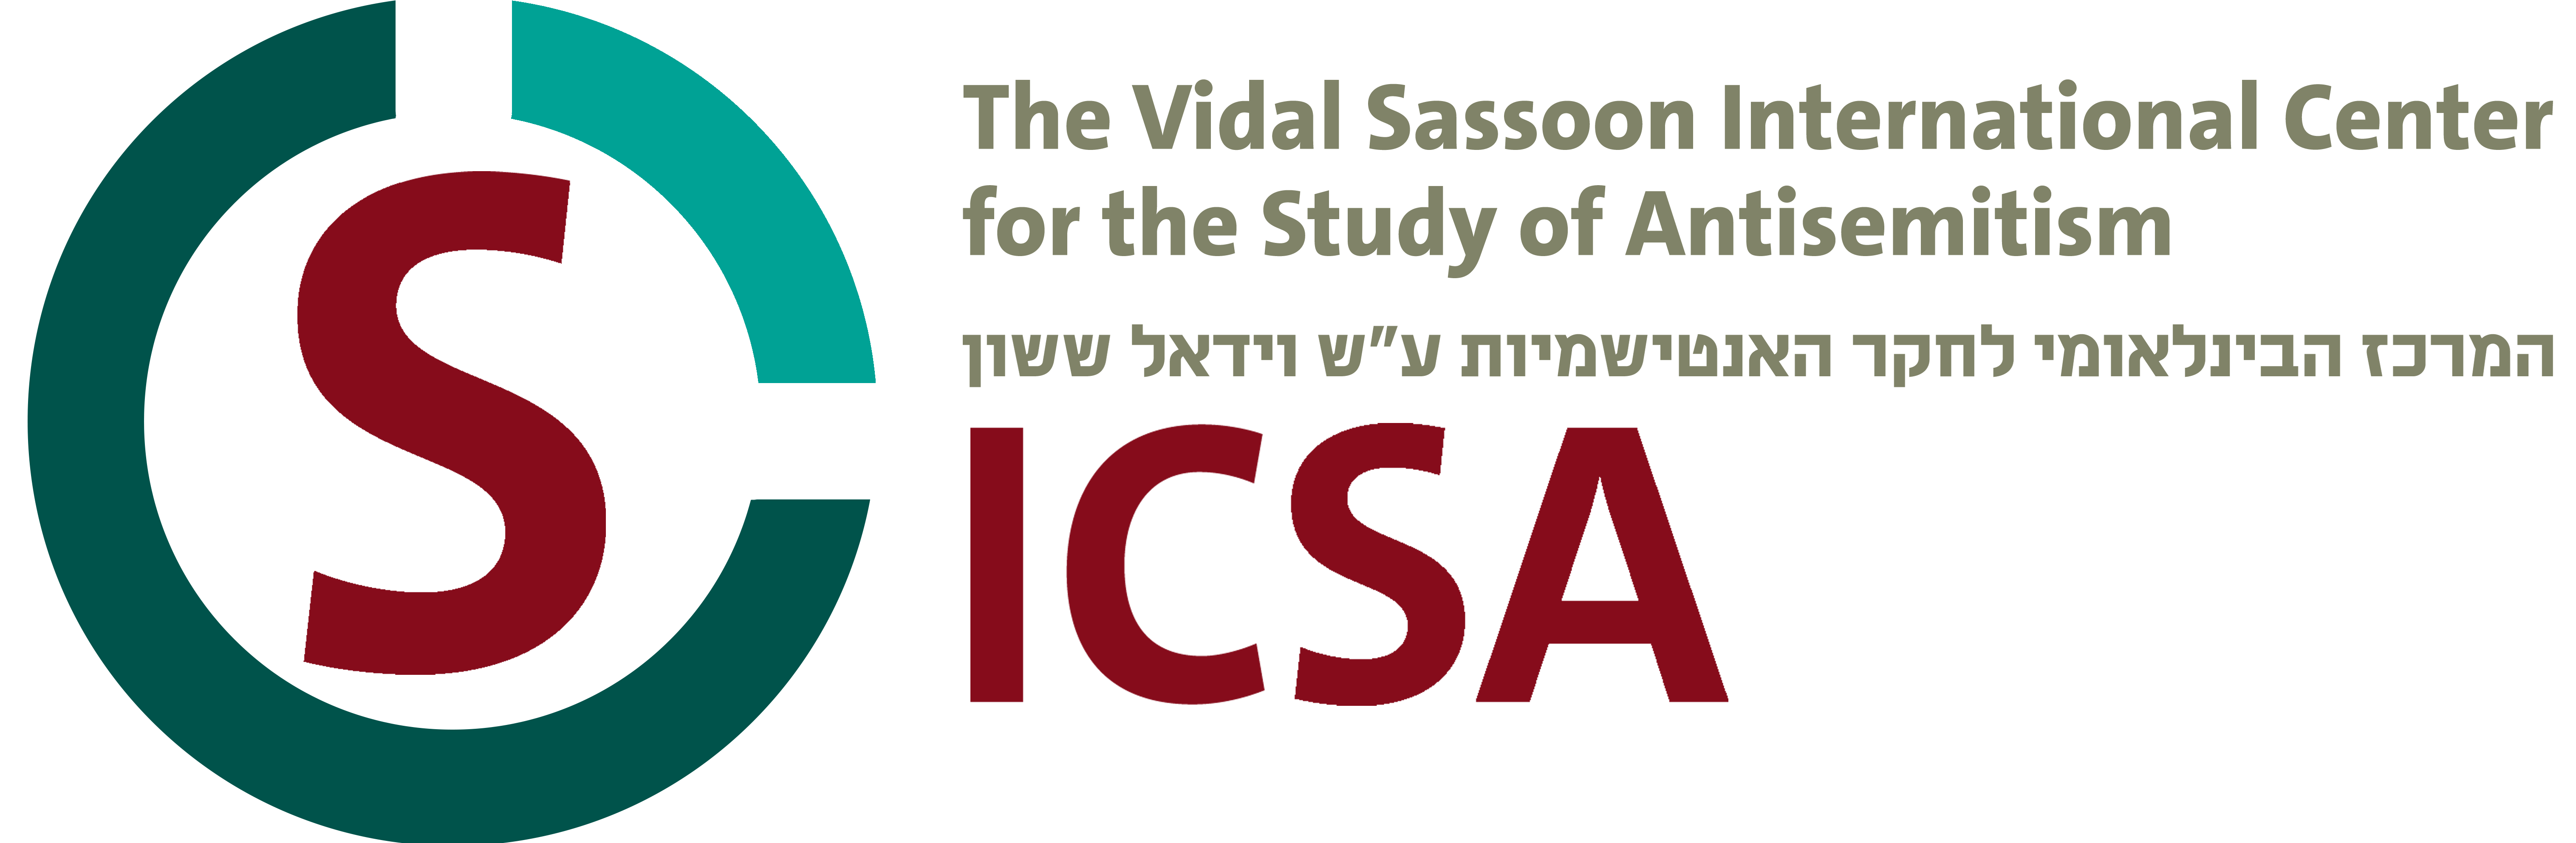 The Vidal Sassoon International Center for the Study of Antisemitism